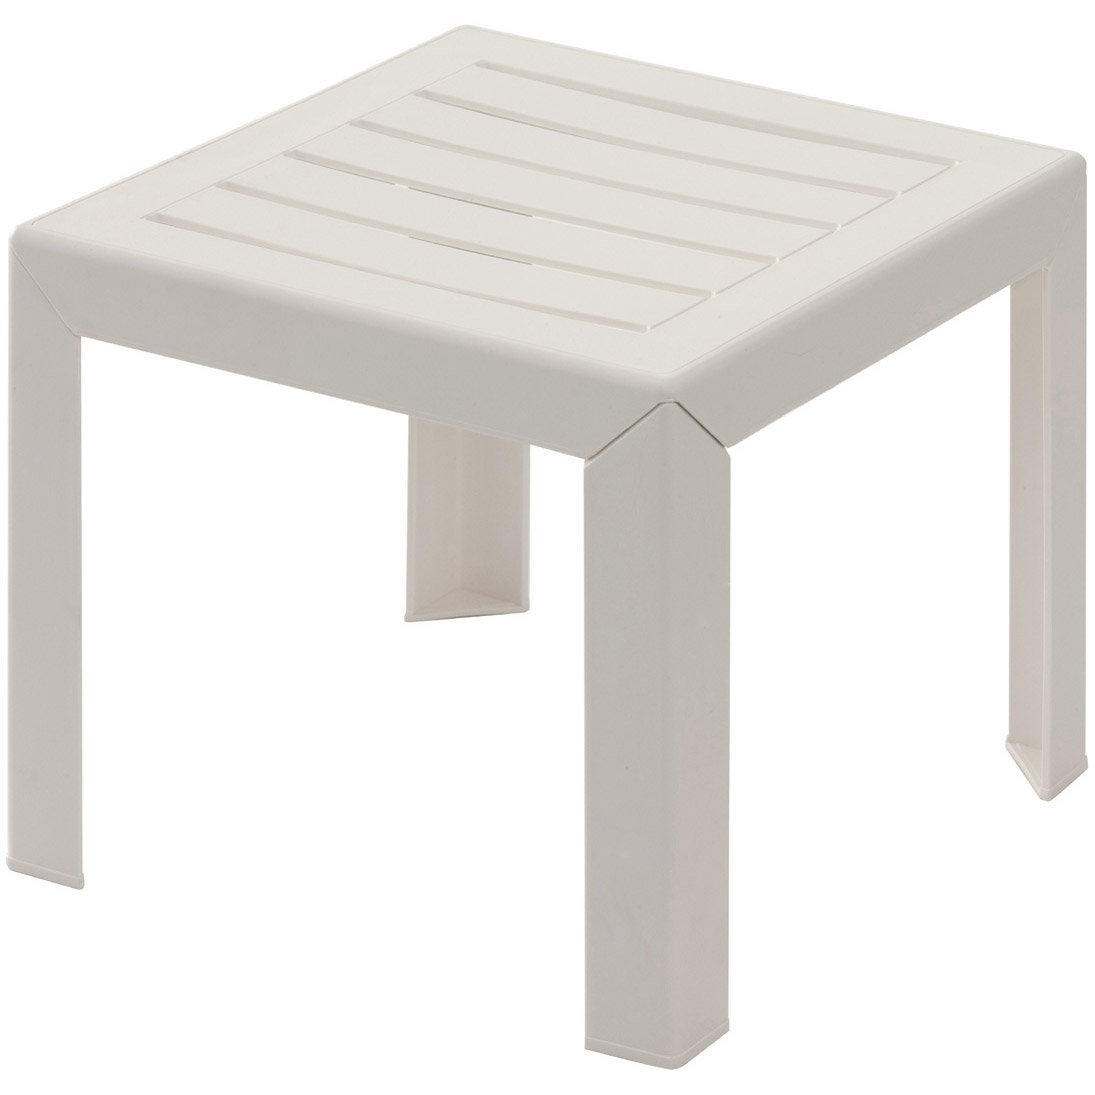 Table basse grosfillex miami carr e blanc leroy merlin for Leroy merlin table basse